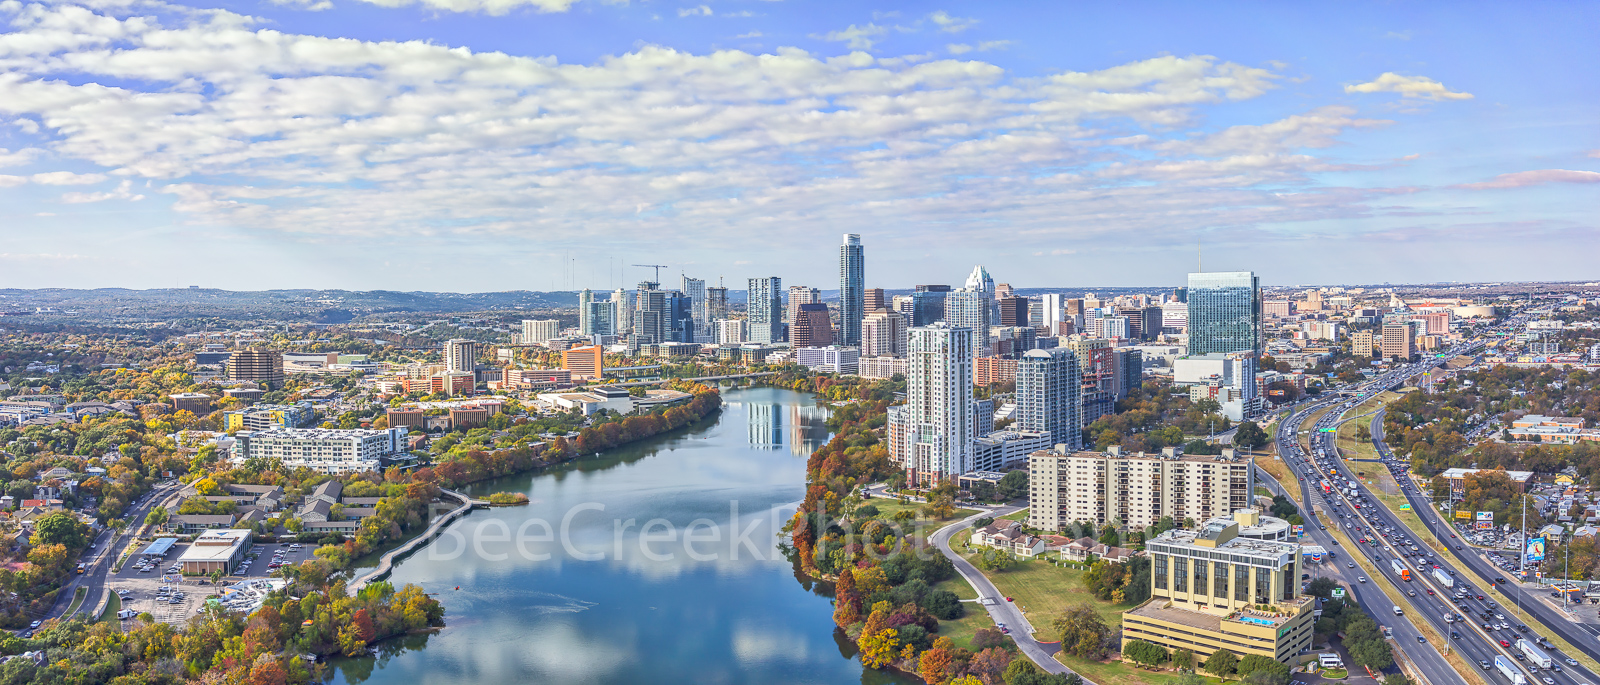 Austin skyline,  Fall,  Austin Skyline Pano, high rise, Lady Bird lake, city, downtown, buildings, shoreline, IH35, water, aerial, drone, reflection, clouds, colorful fall trees, banks, panorama, , photo